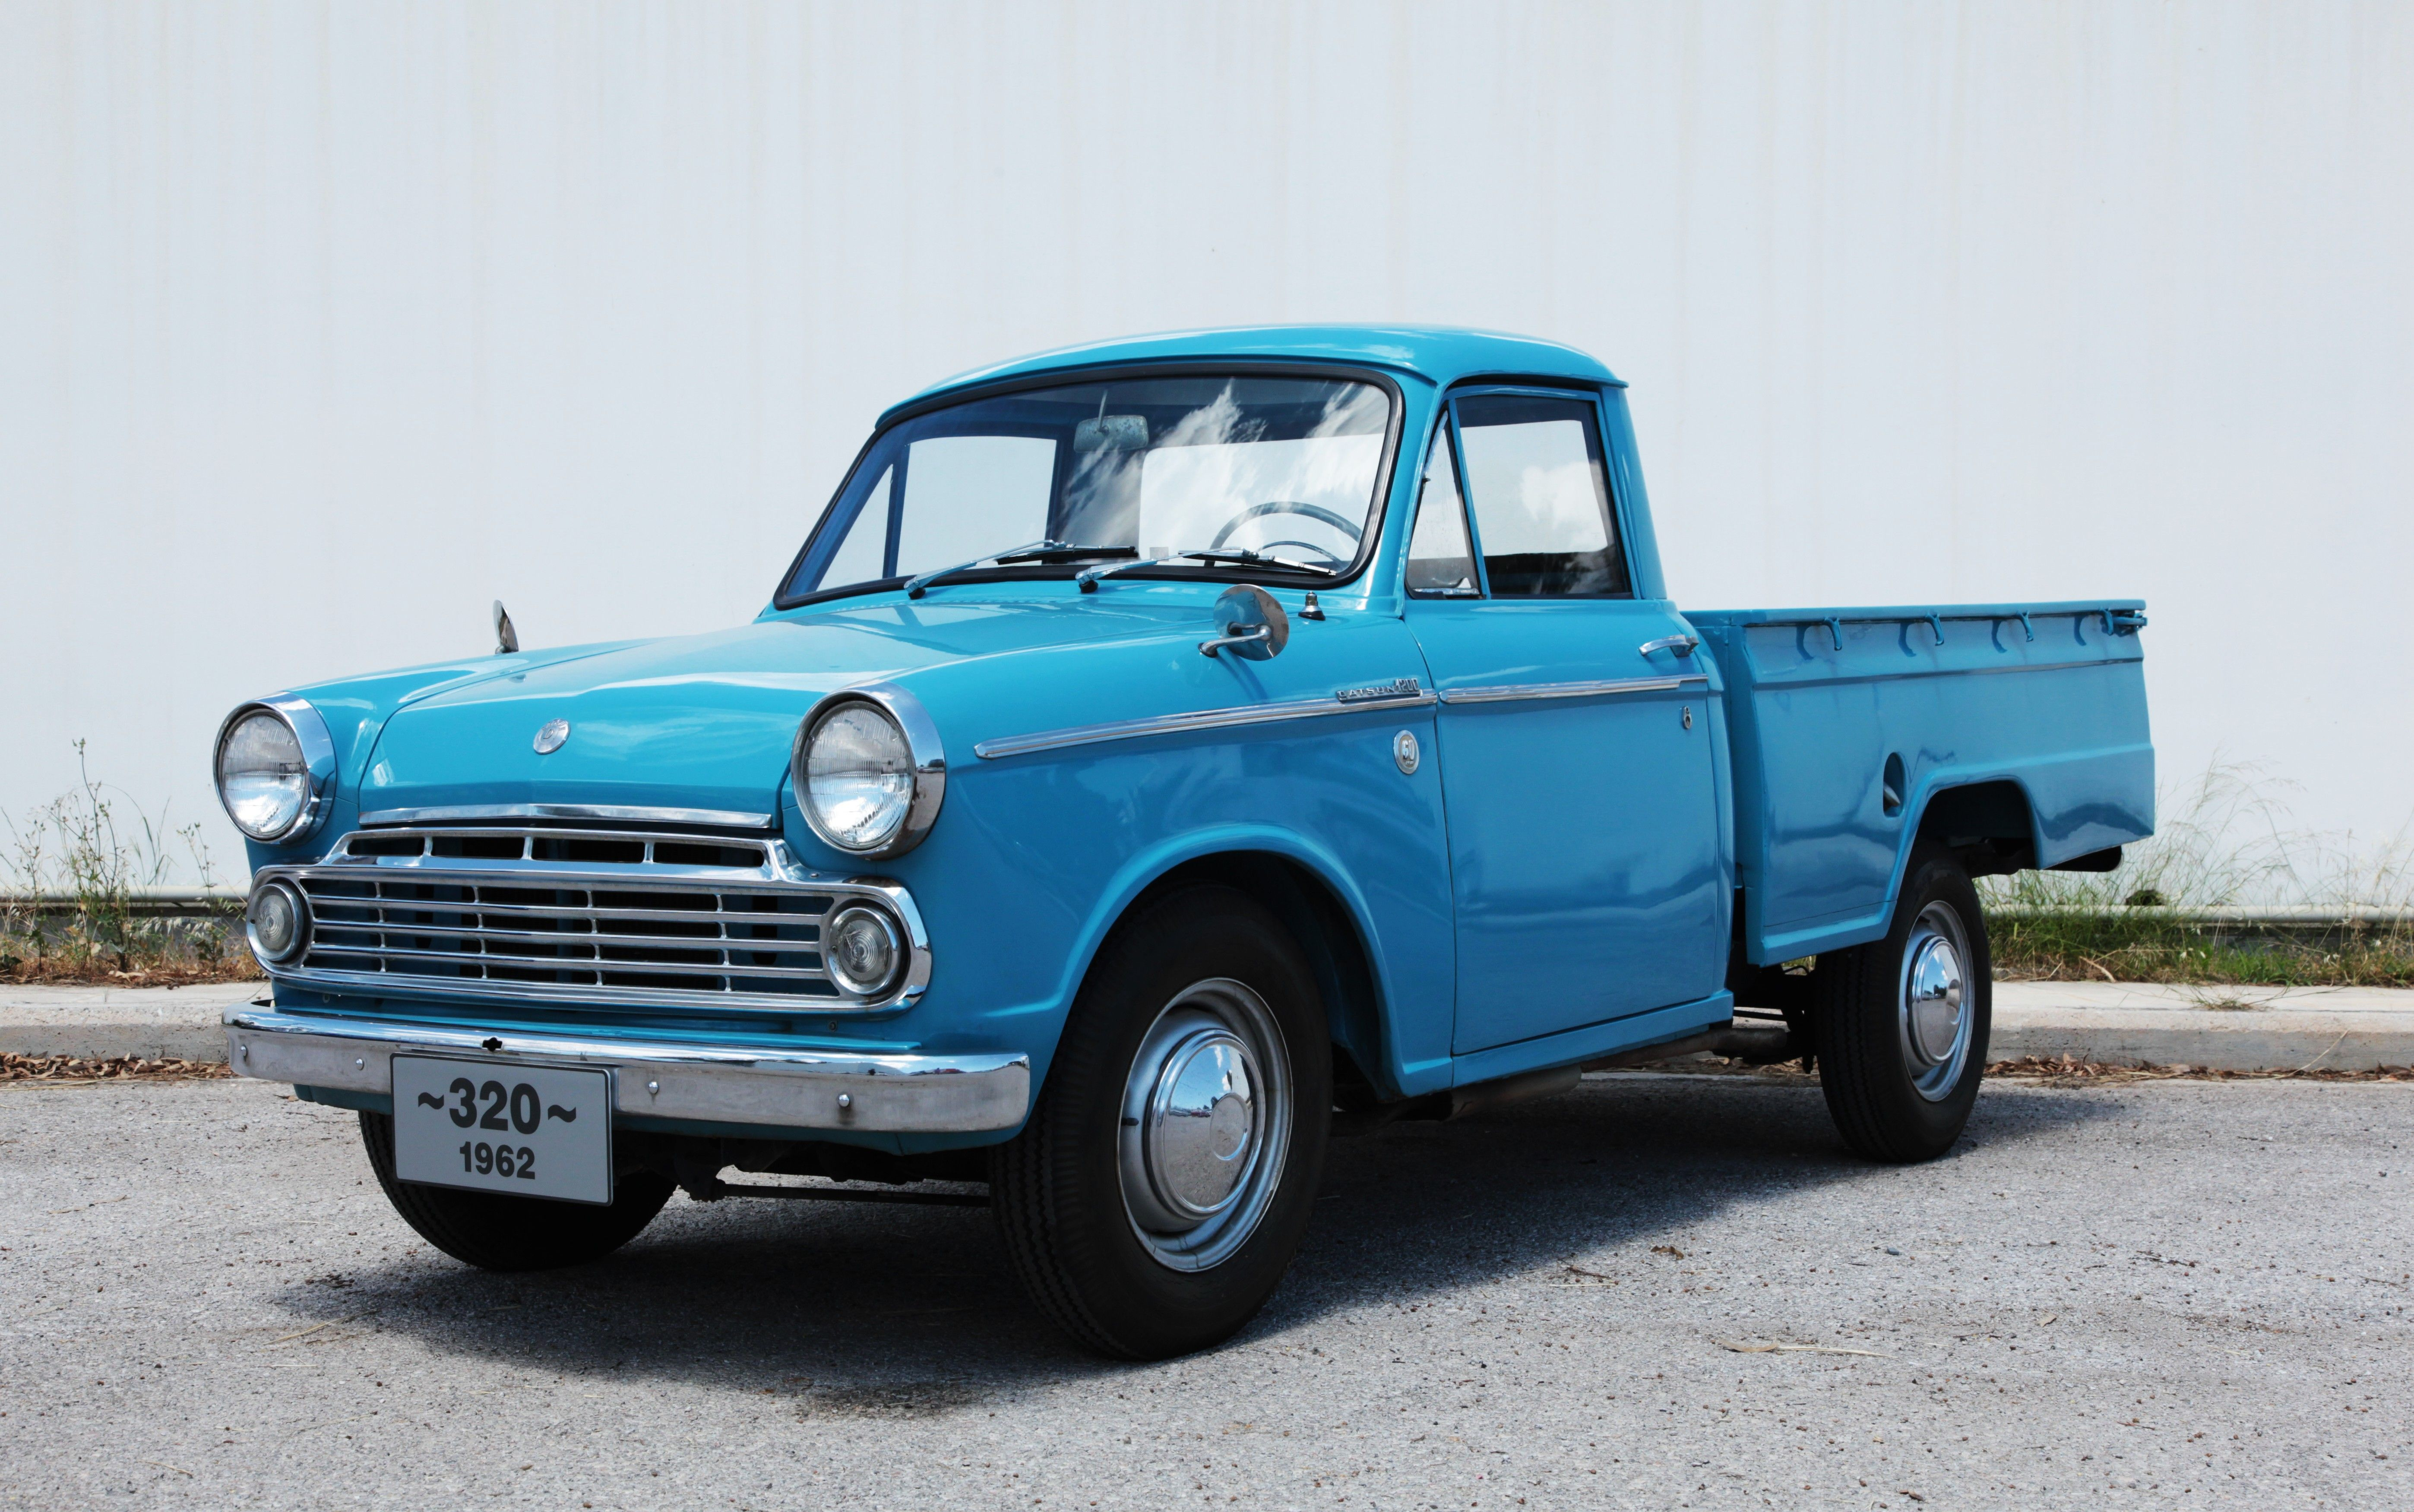 Datsun 320 Pick up. Introduced in 1962, it is one of the